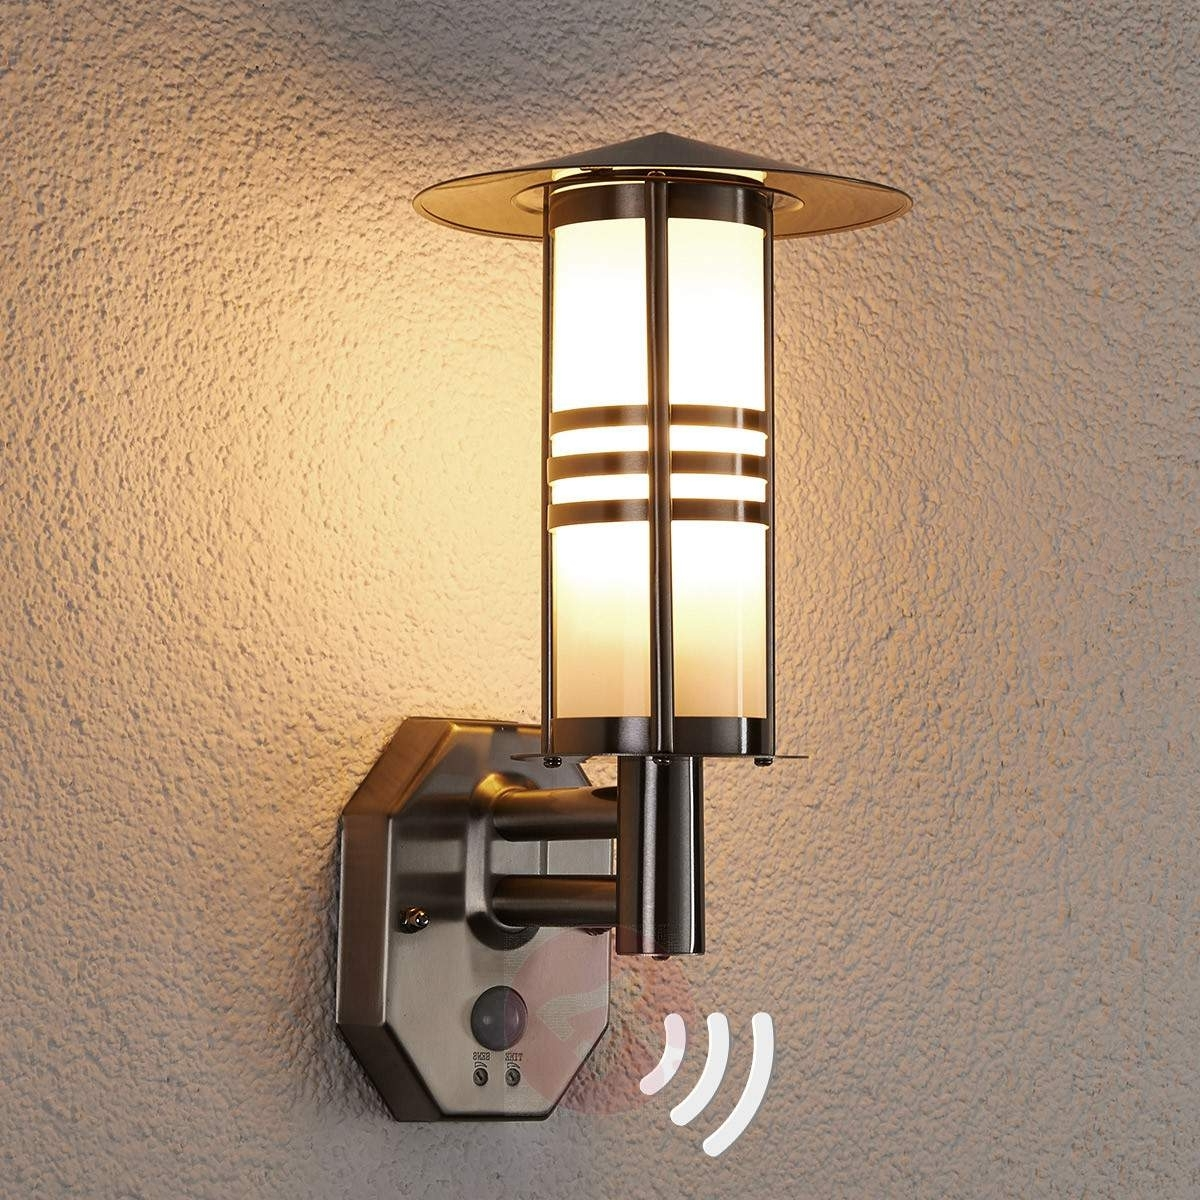 Most Recent Eglo Lighting Sidney Outdoor Wall Lights With Motion Sensor Intended For Furniture : Wall Lights Outside Motion Sensor Lighting Product (View 18 of 20)